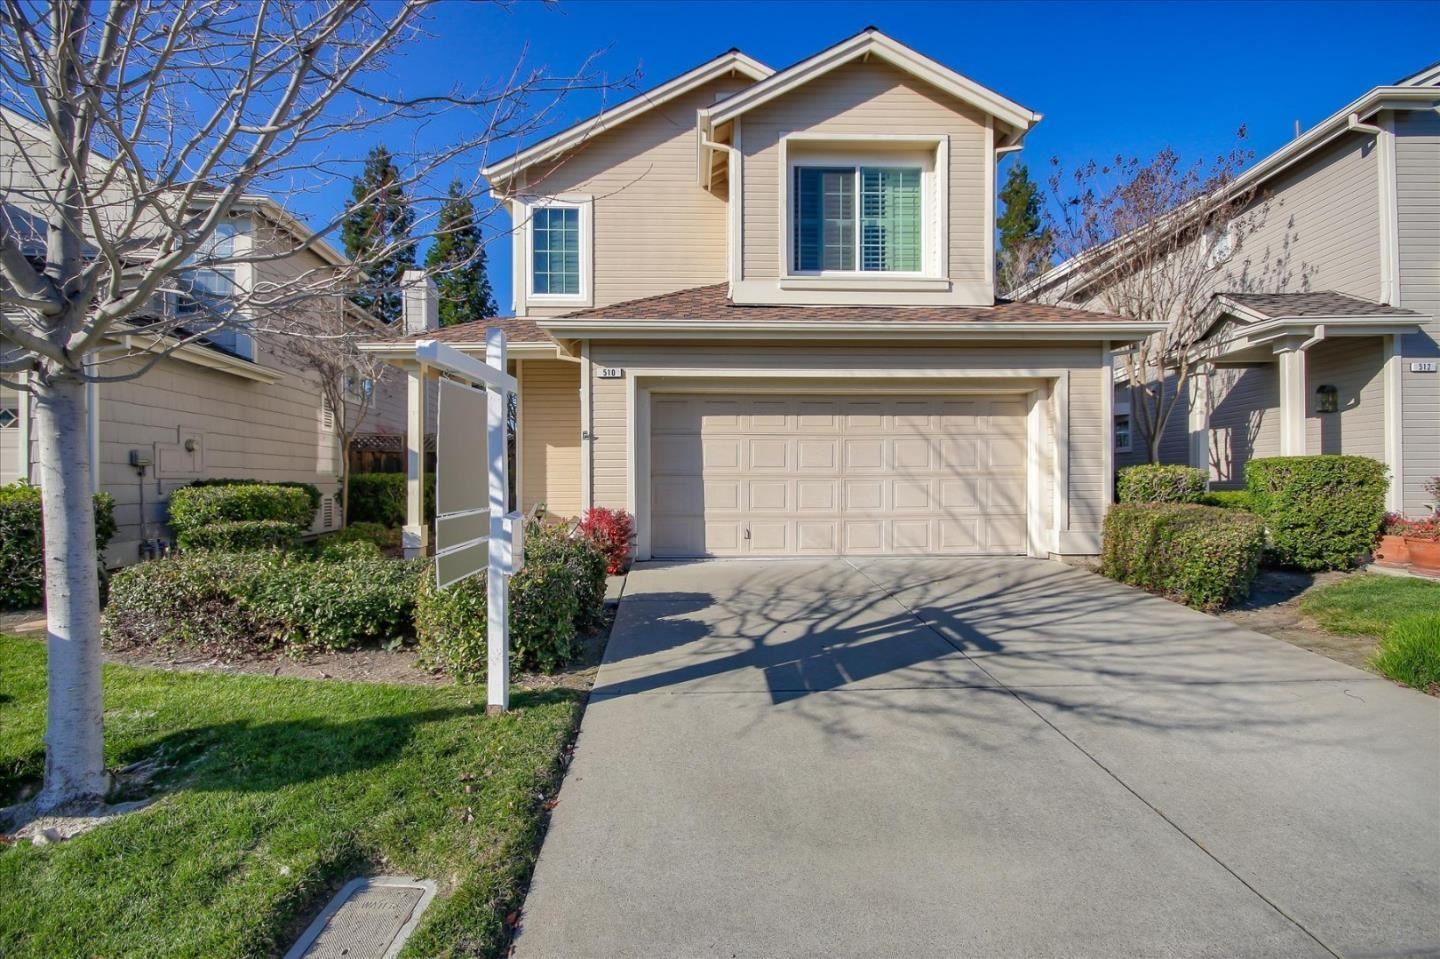 Photo for 510 Valley View CT, MARTINEZ, CA 94553 (MLS # ML81782811)